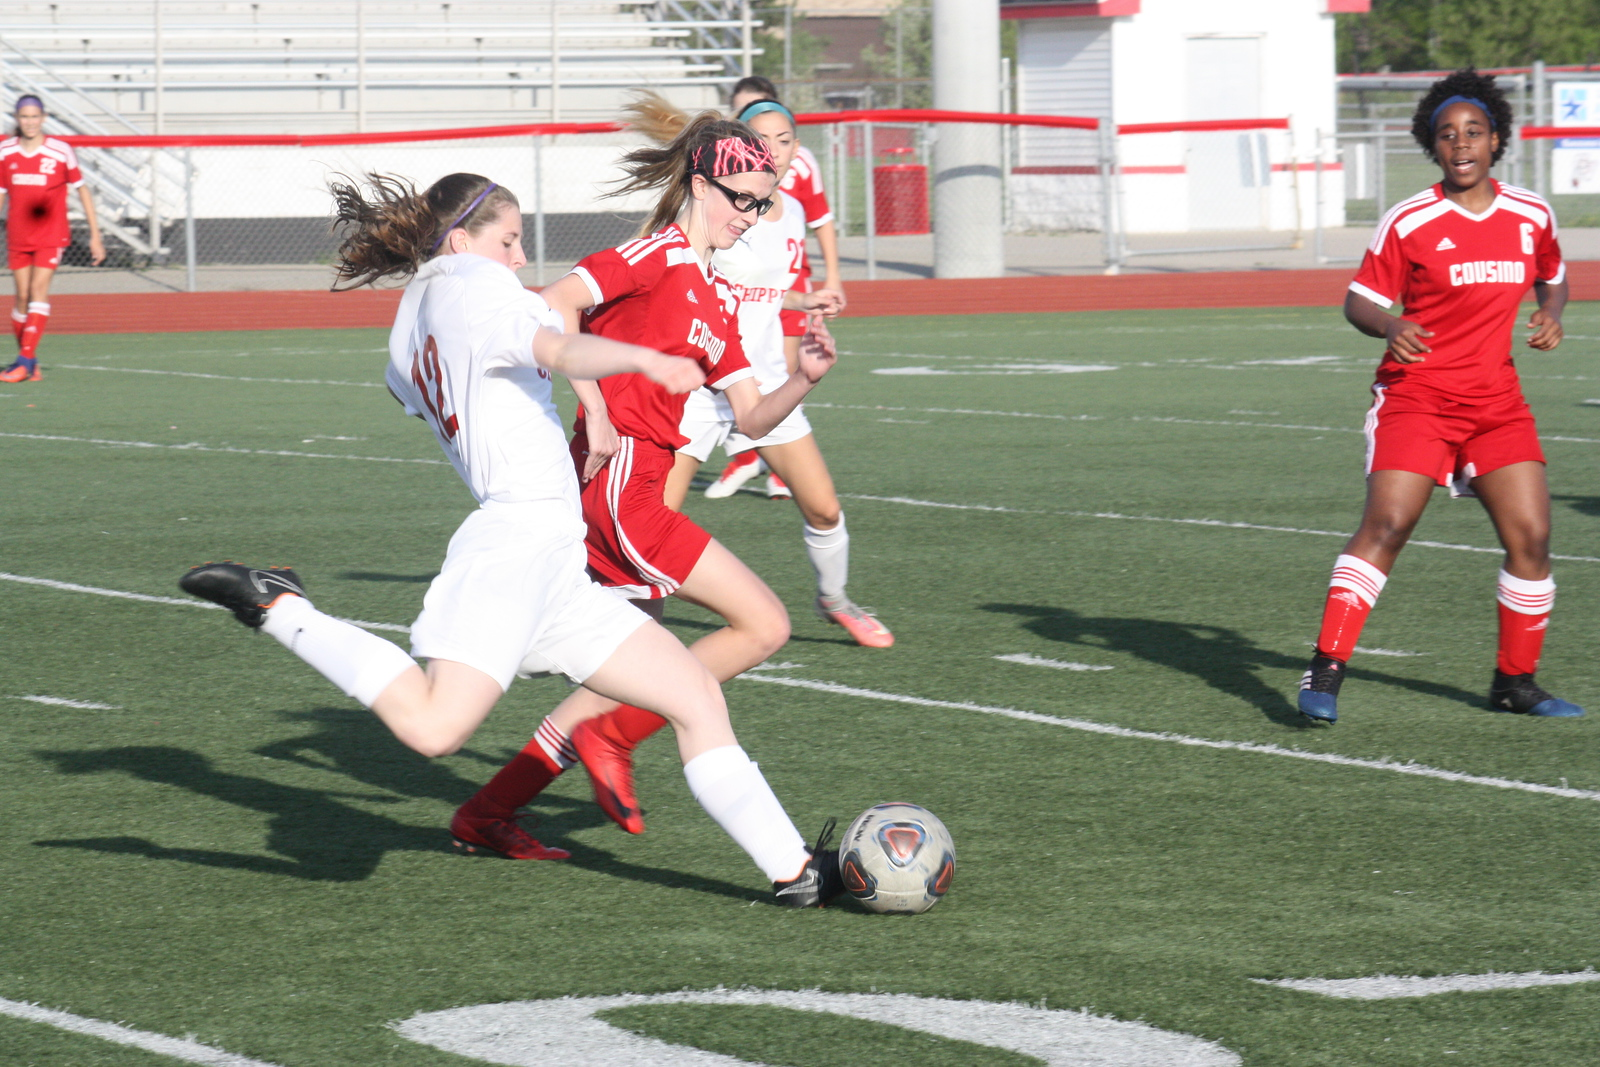 Chippewa Valley's Alexa Barczak attempts to boot the ball past Cousino's Emma Rutkowski during the first half of their MAC Blue Division match on May 14, 2018 at Chippewa Valley. (Photo gallery by Kevin Lozon)